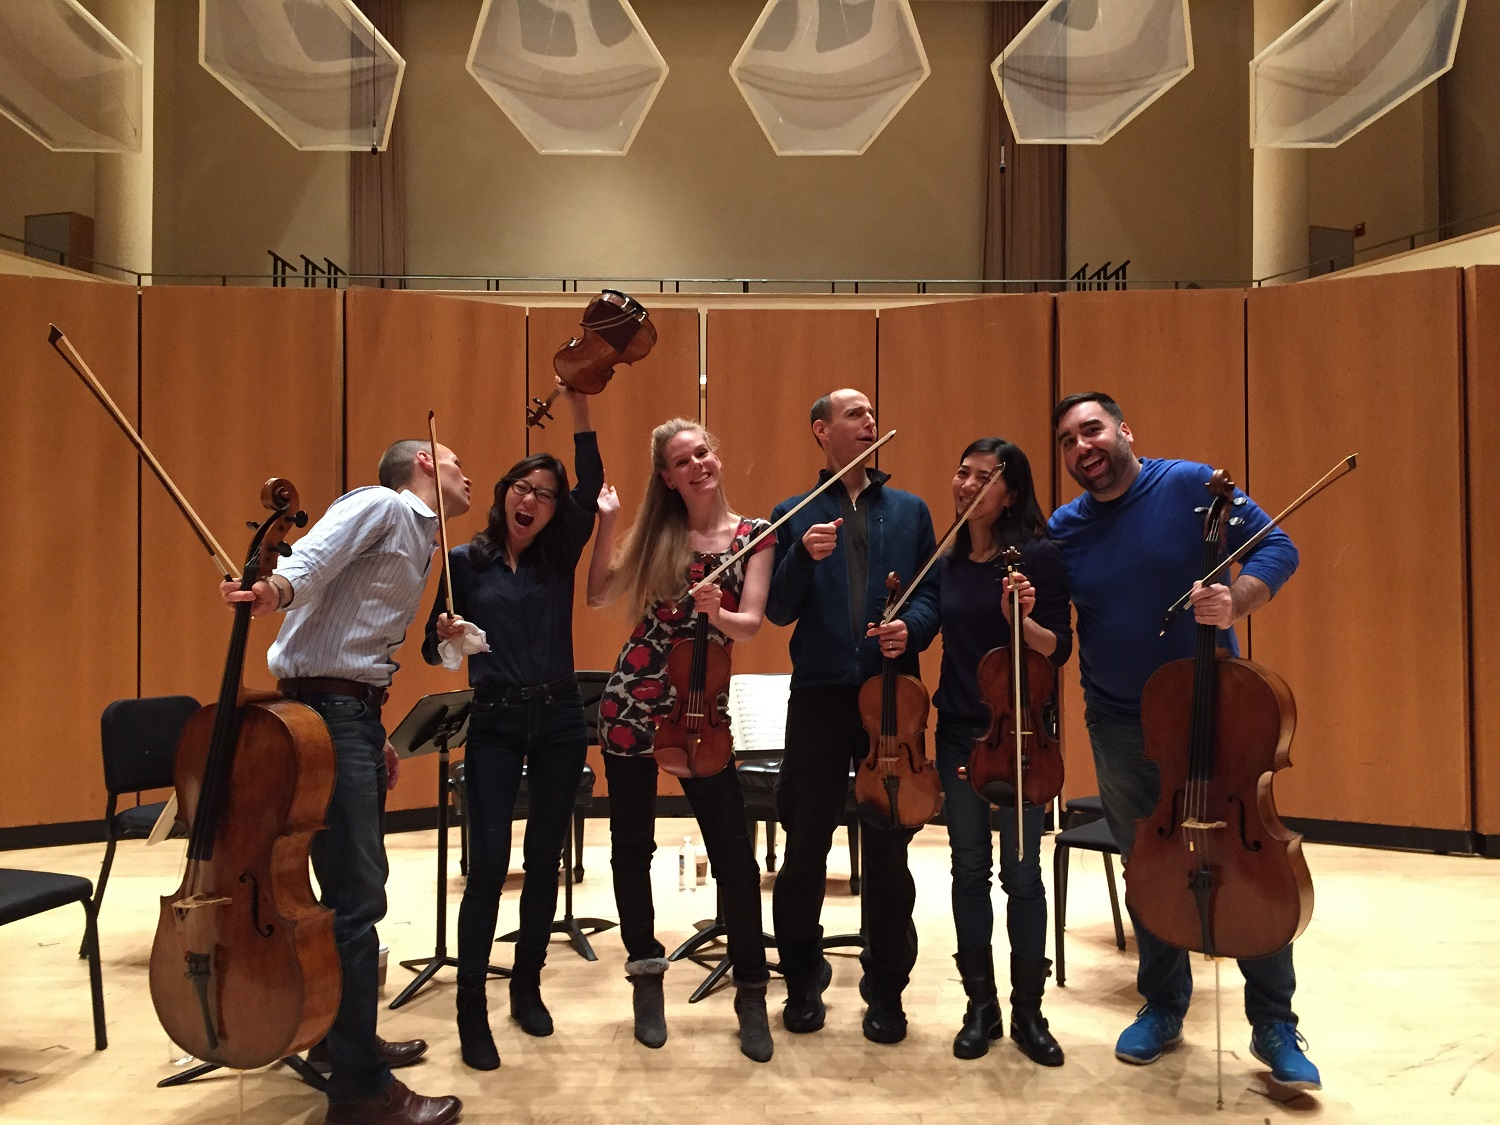 2015 - US, Evanston NU Chicago Winter Chamber Music Festival